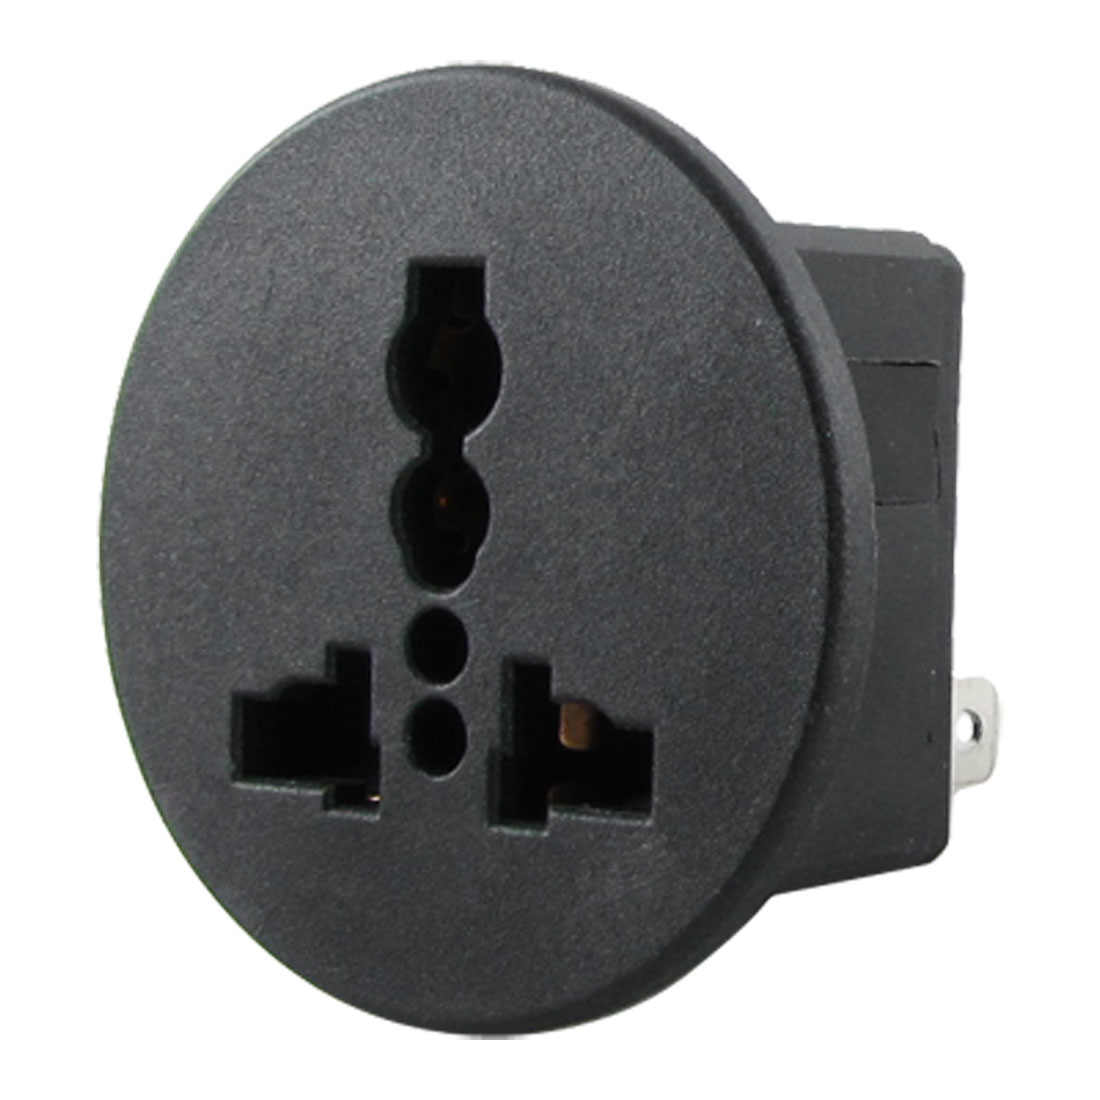 AC 250V 13A Round Black Universal Panel Socket Plug Outlet Power Receptacle